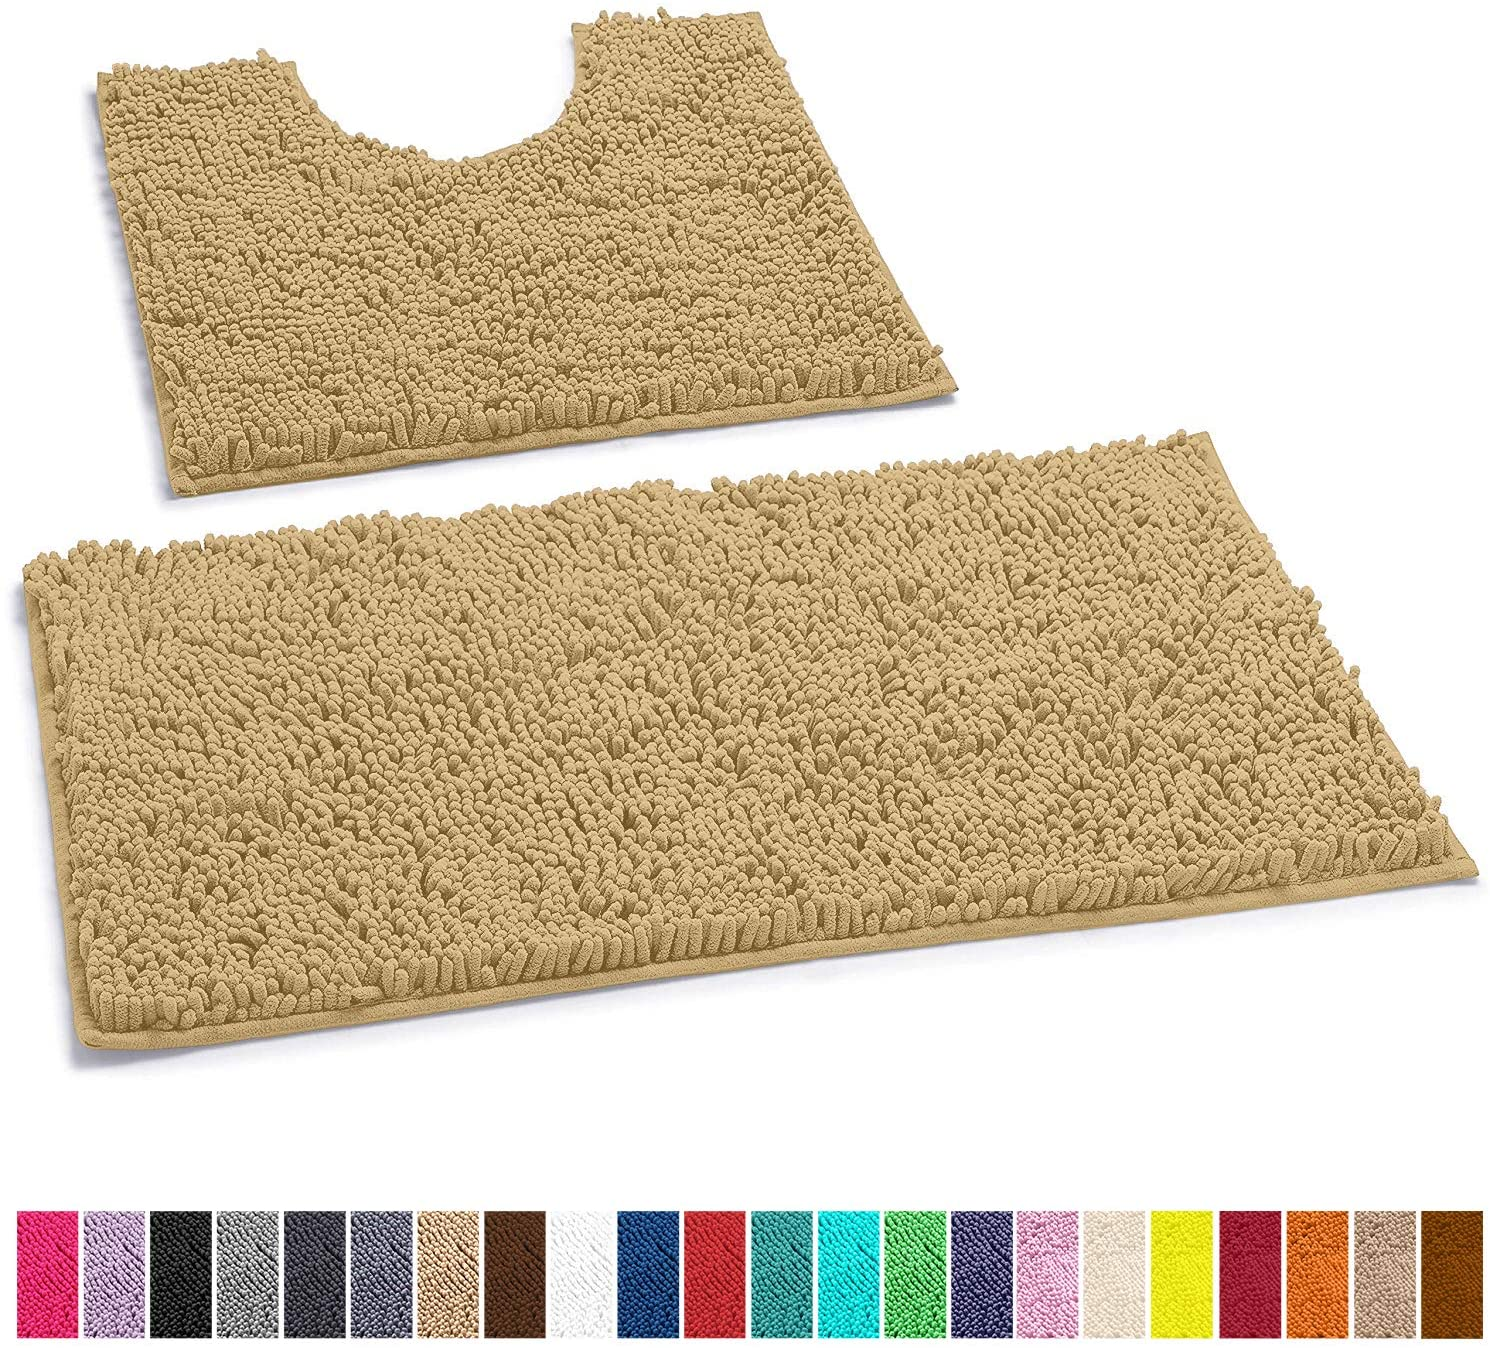 LuxUrux Bathroom Rugs Luxury Chenille 2-Piece Bath Mat Set,